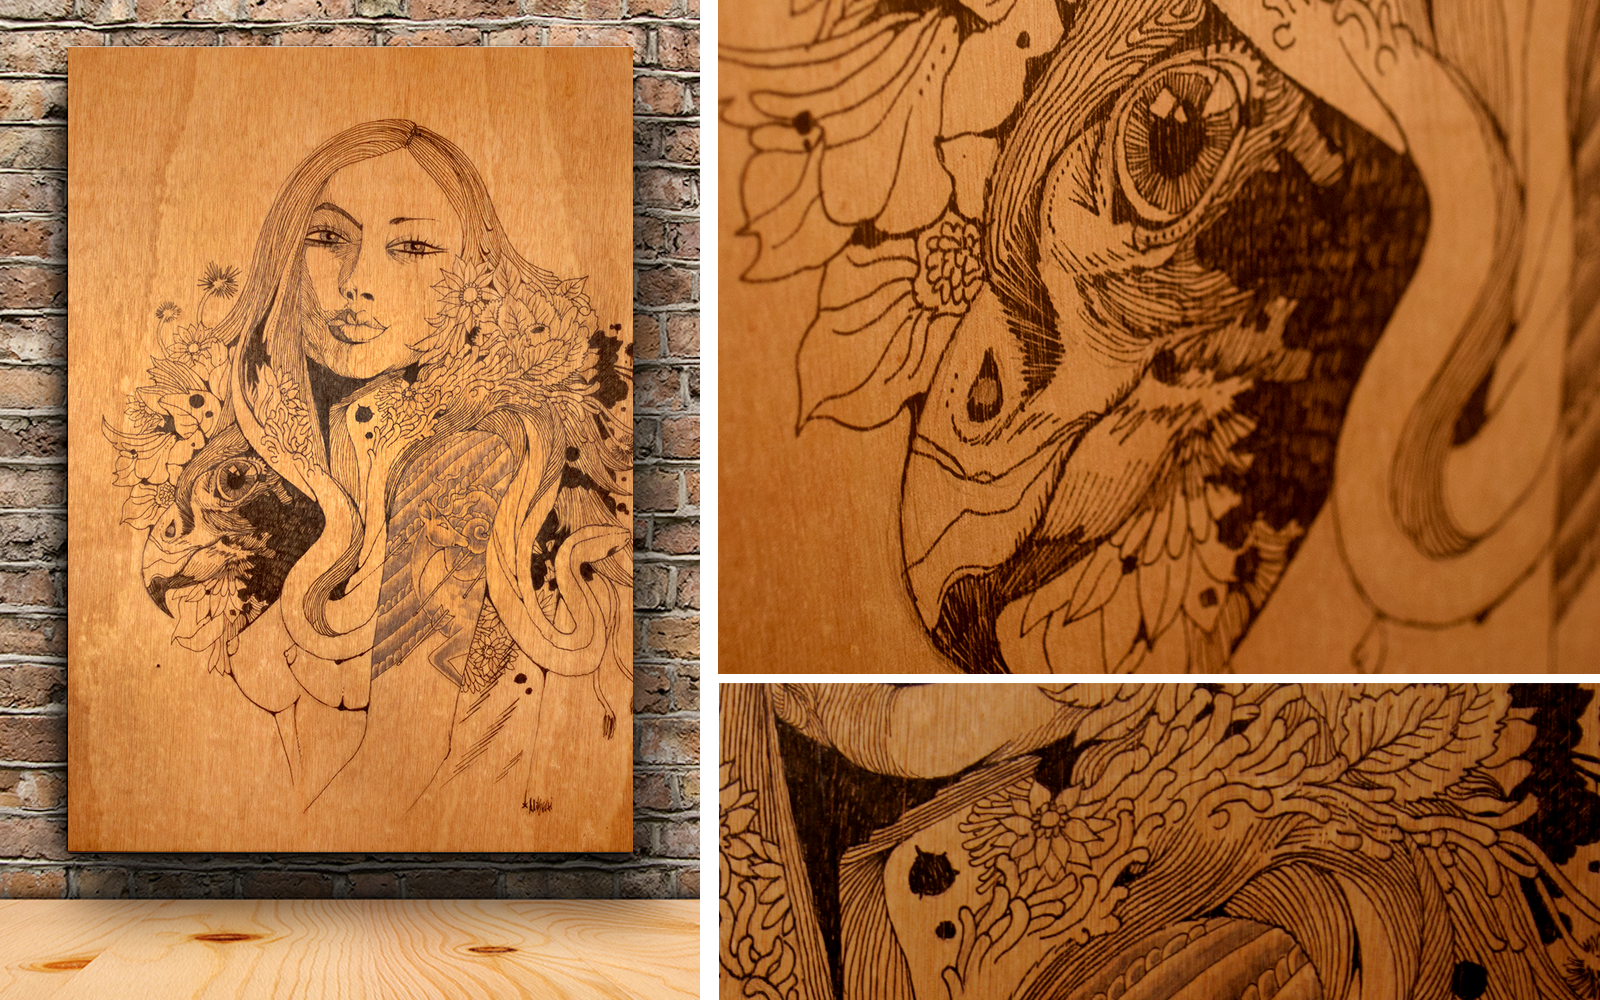 Wonderful image of Wood Panel Illustrations Art Pinterest with #666666 color and 1600x1000 pixels